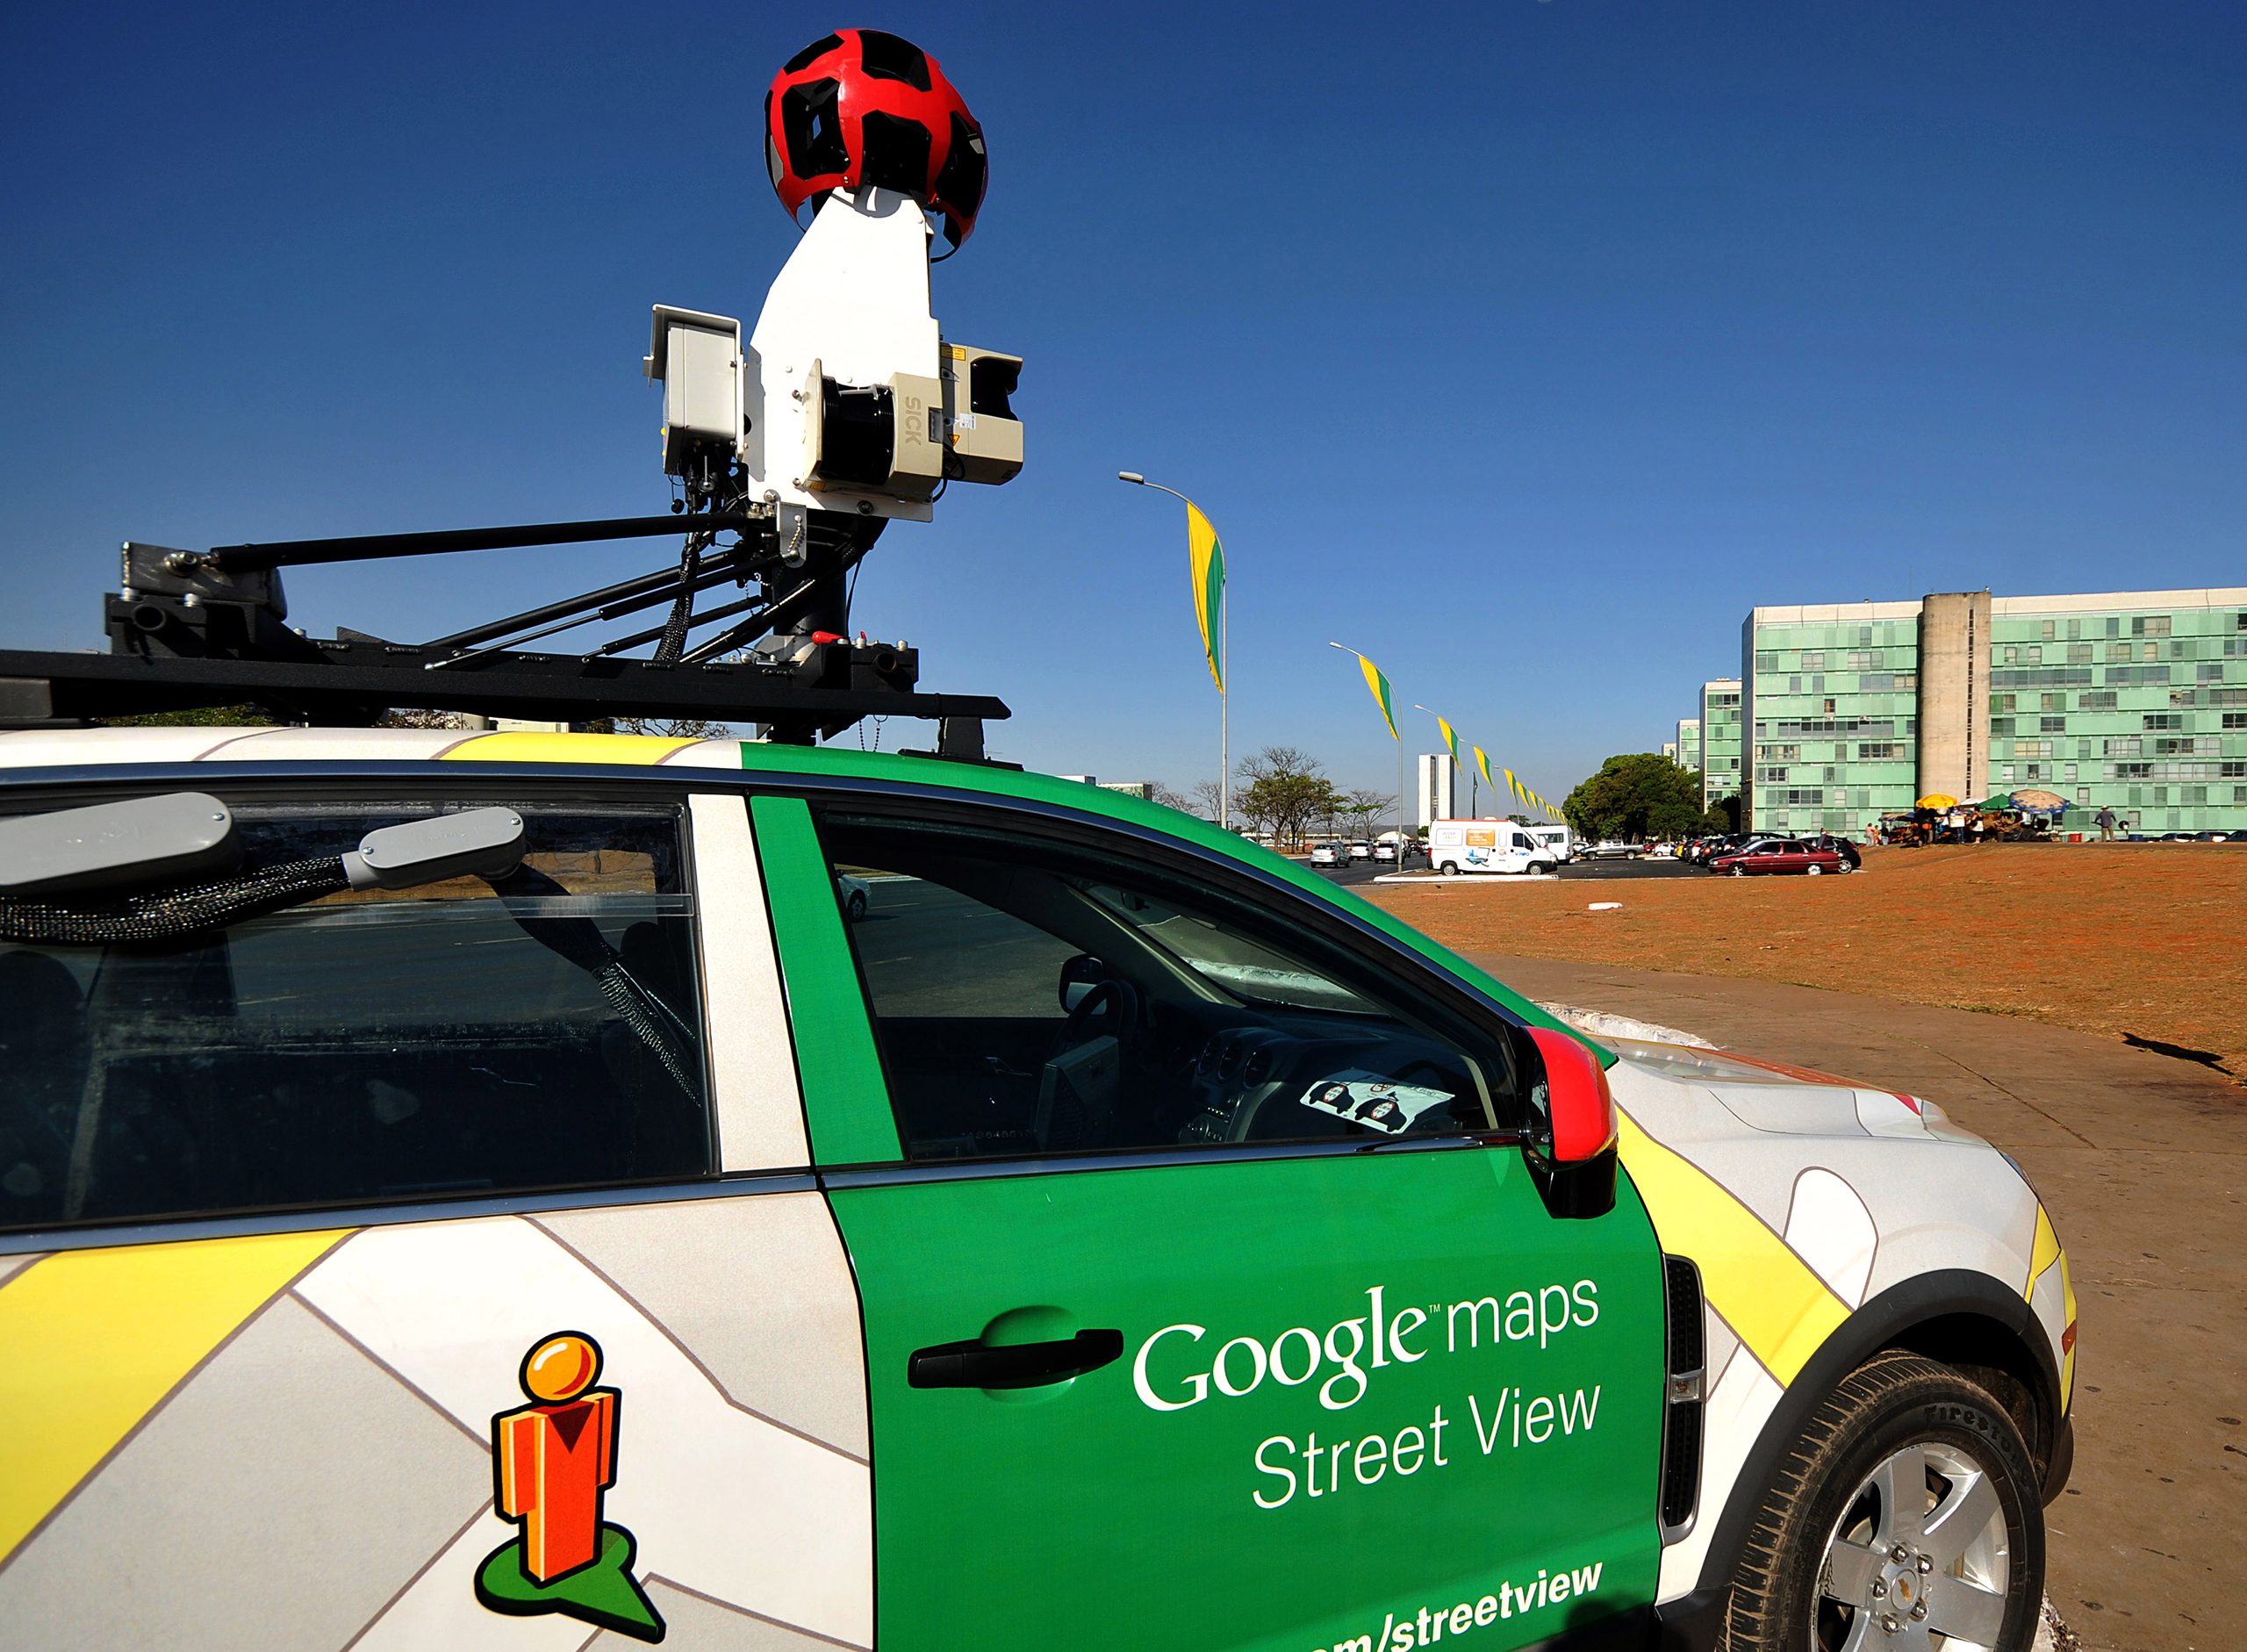 The Google street view car in the streets of Brasilia, Brazil, on Sept. 6, 2011.